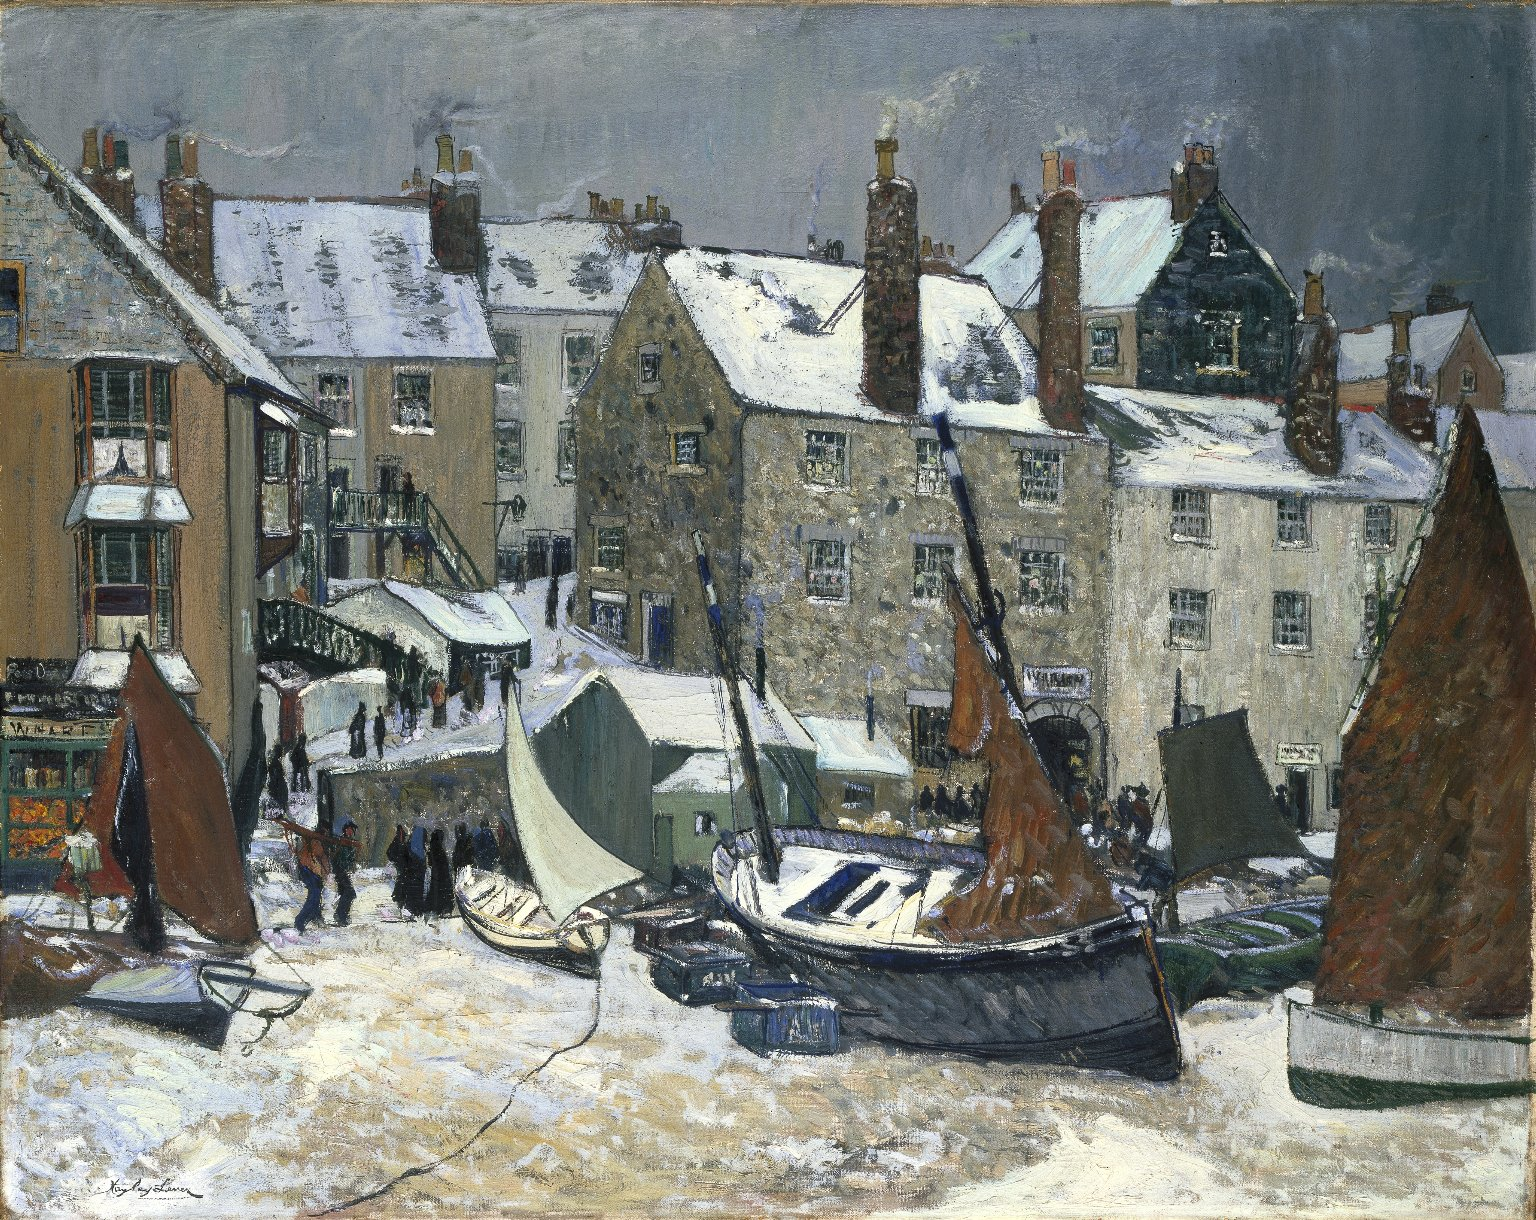 Brooklyn Museum: Winter, St. Ives